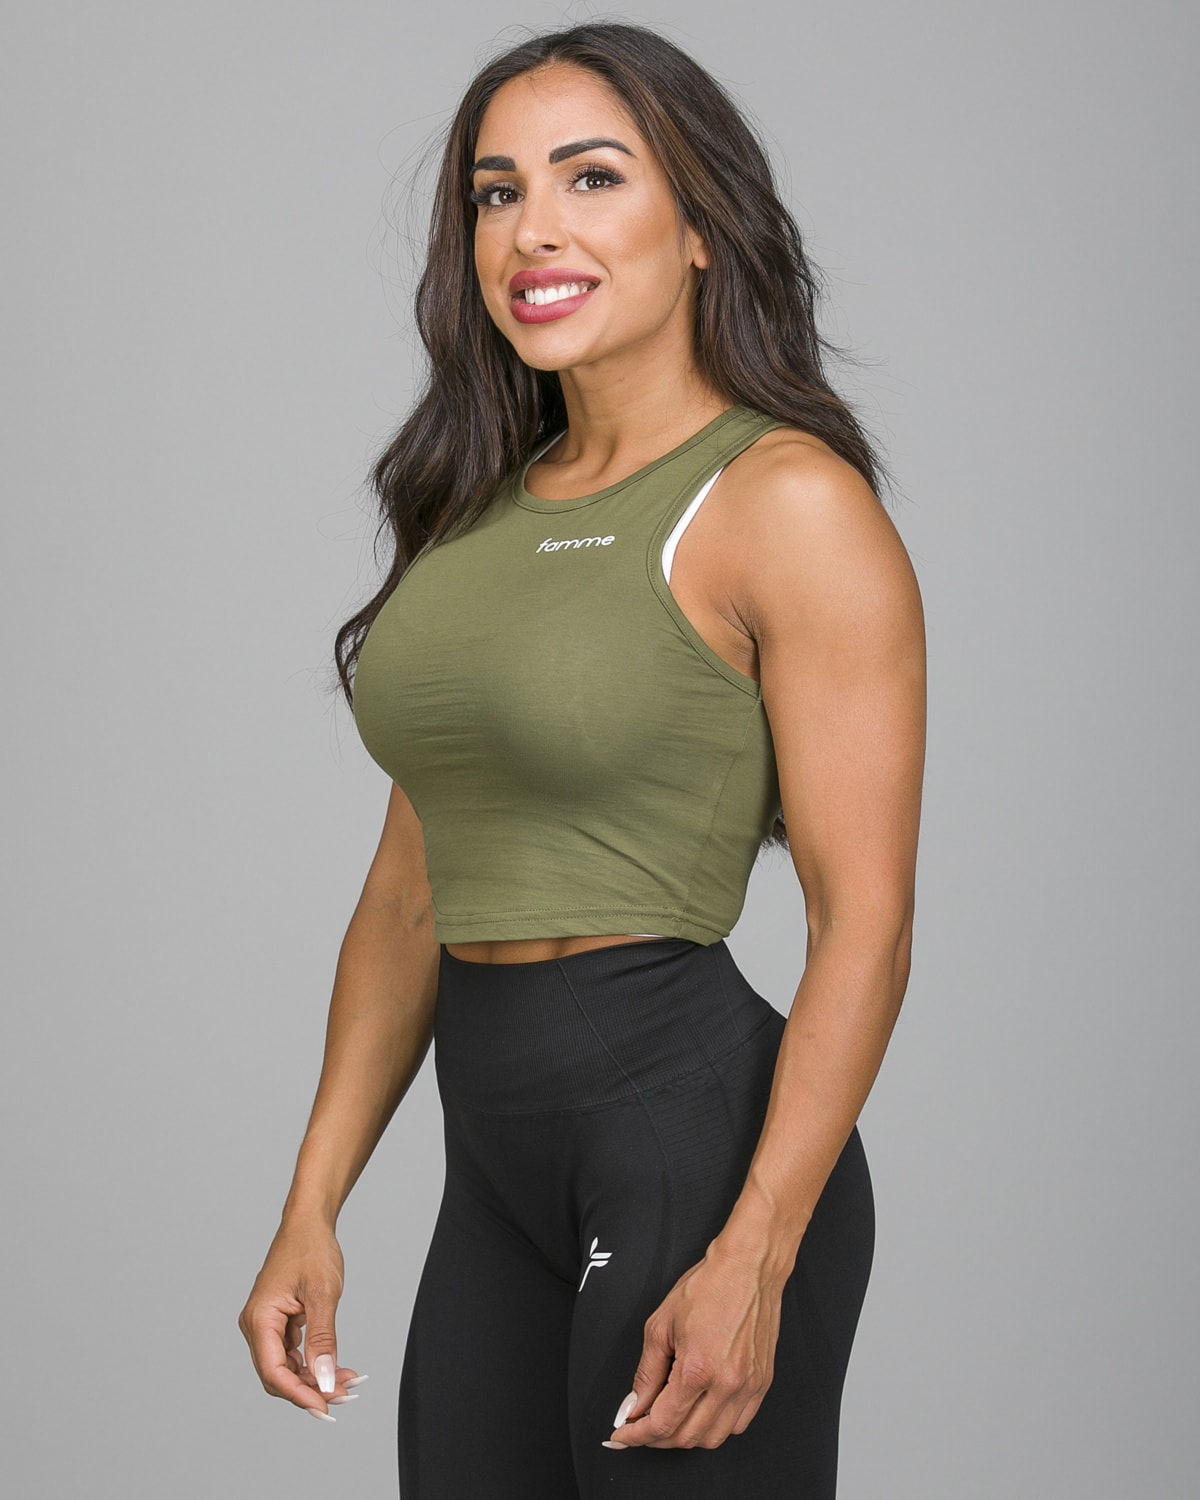 Famme Pure Crop Top Army Green PCT-AG b